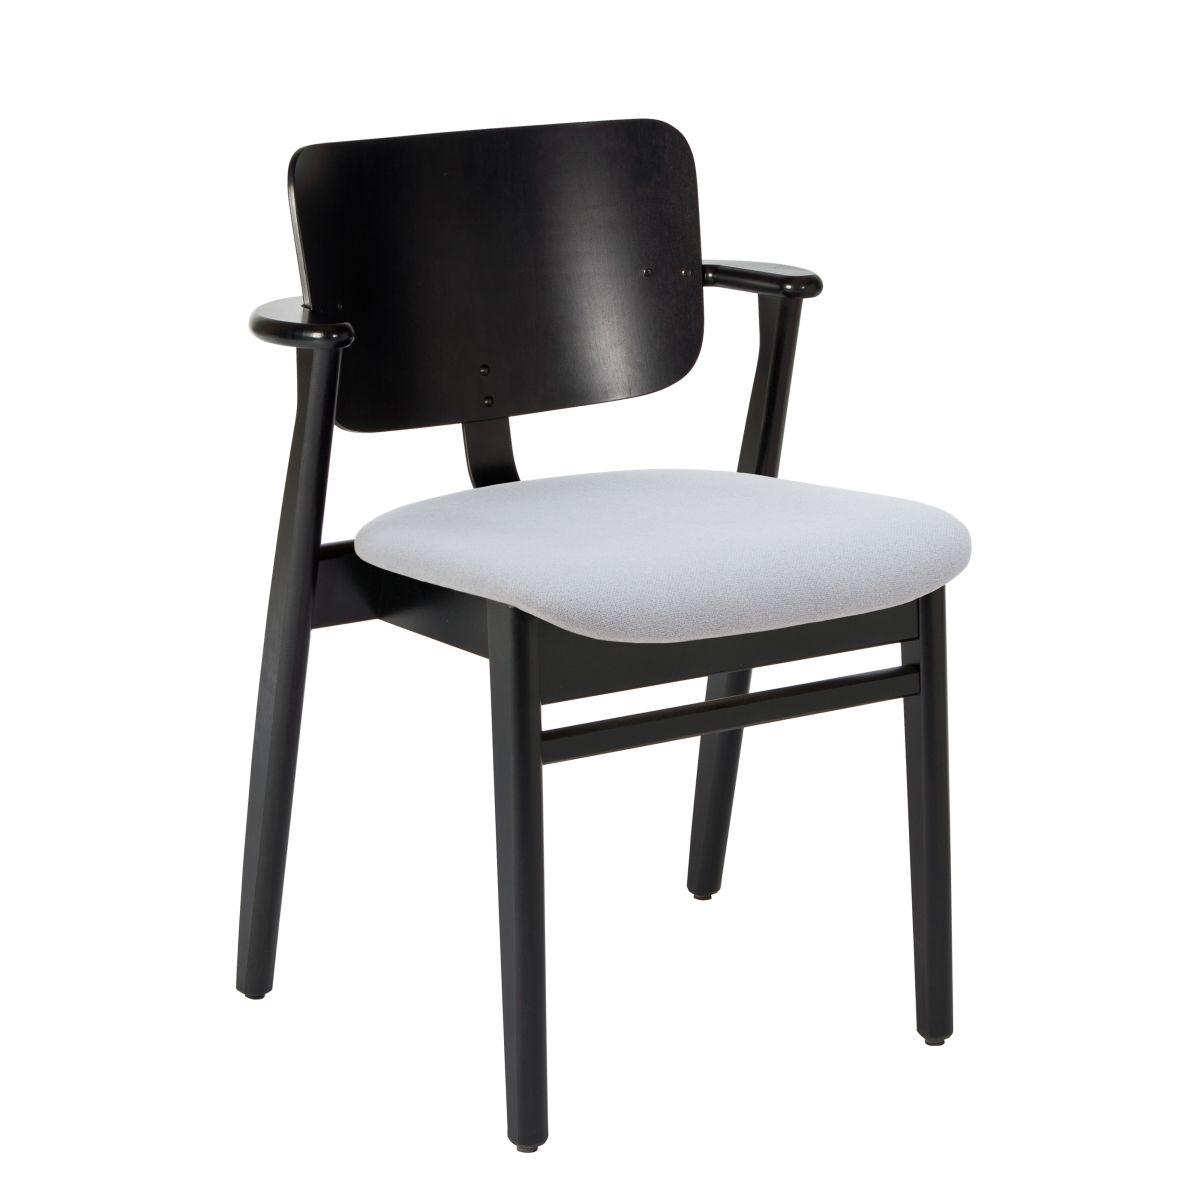 Domus-Chair-legs-black-stained-birch_seat-fabric-grey-2651004